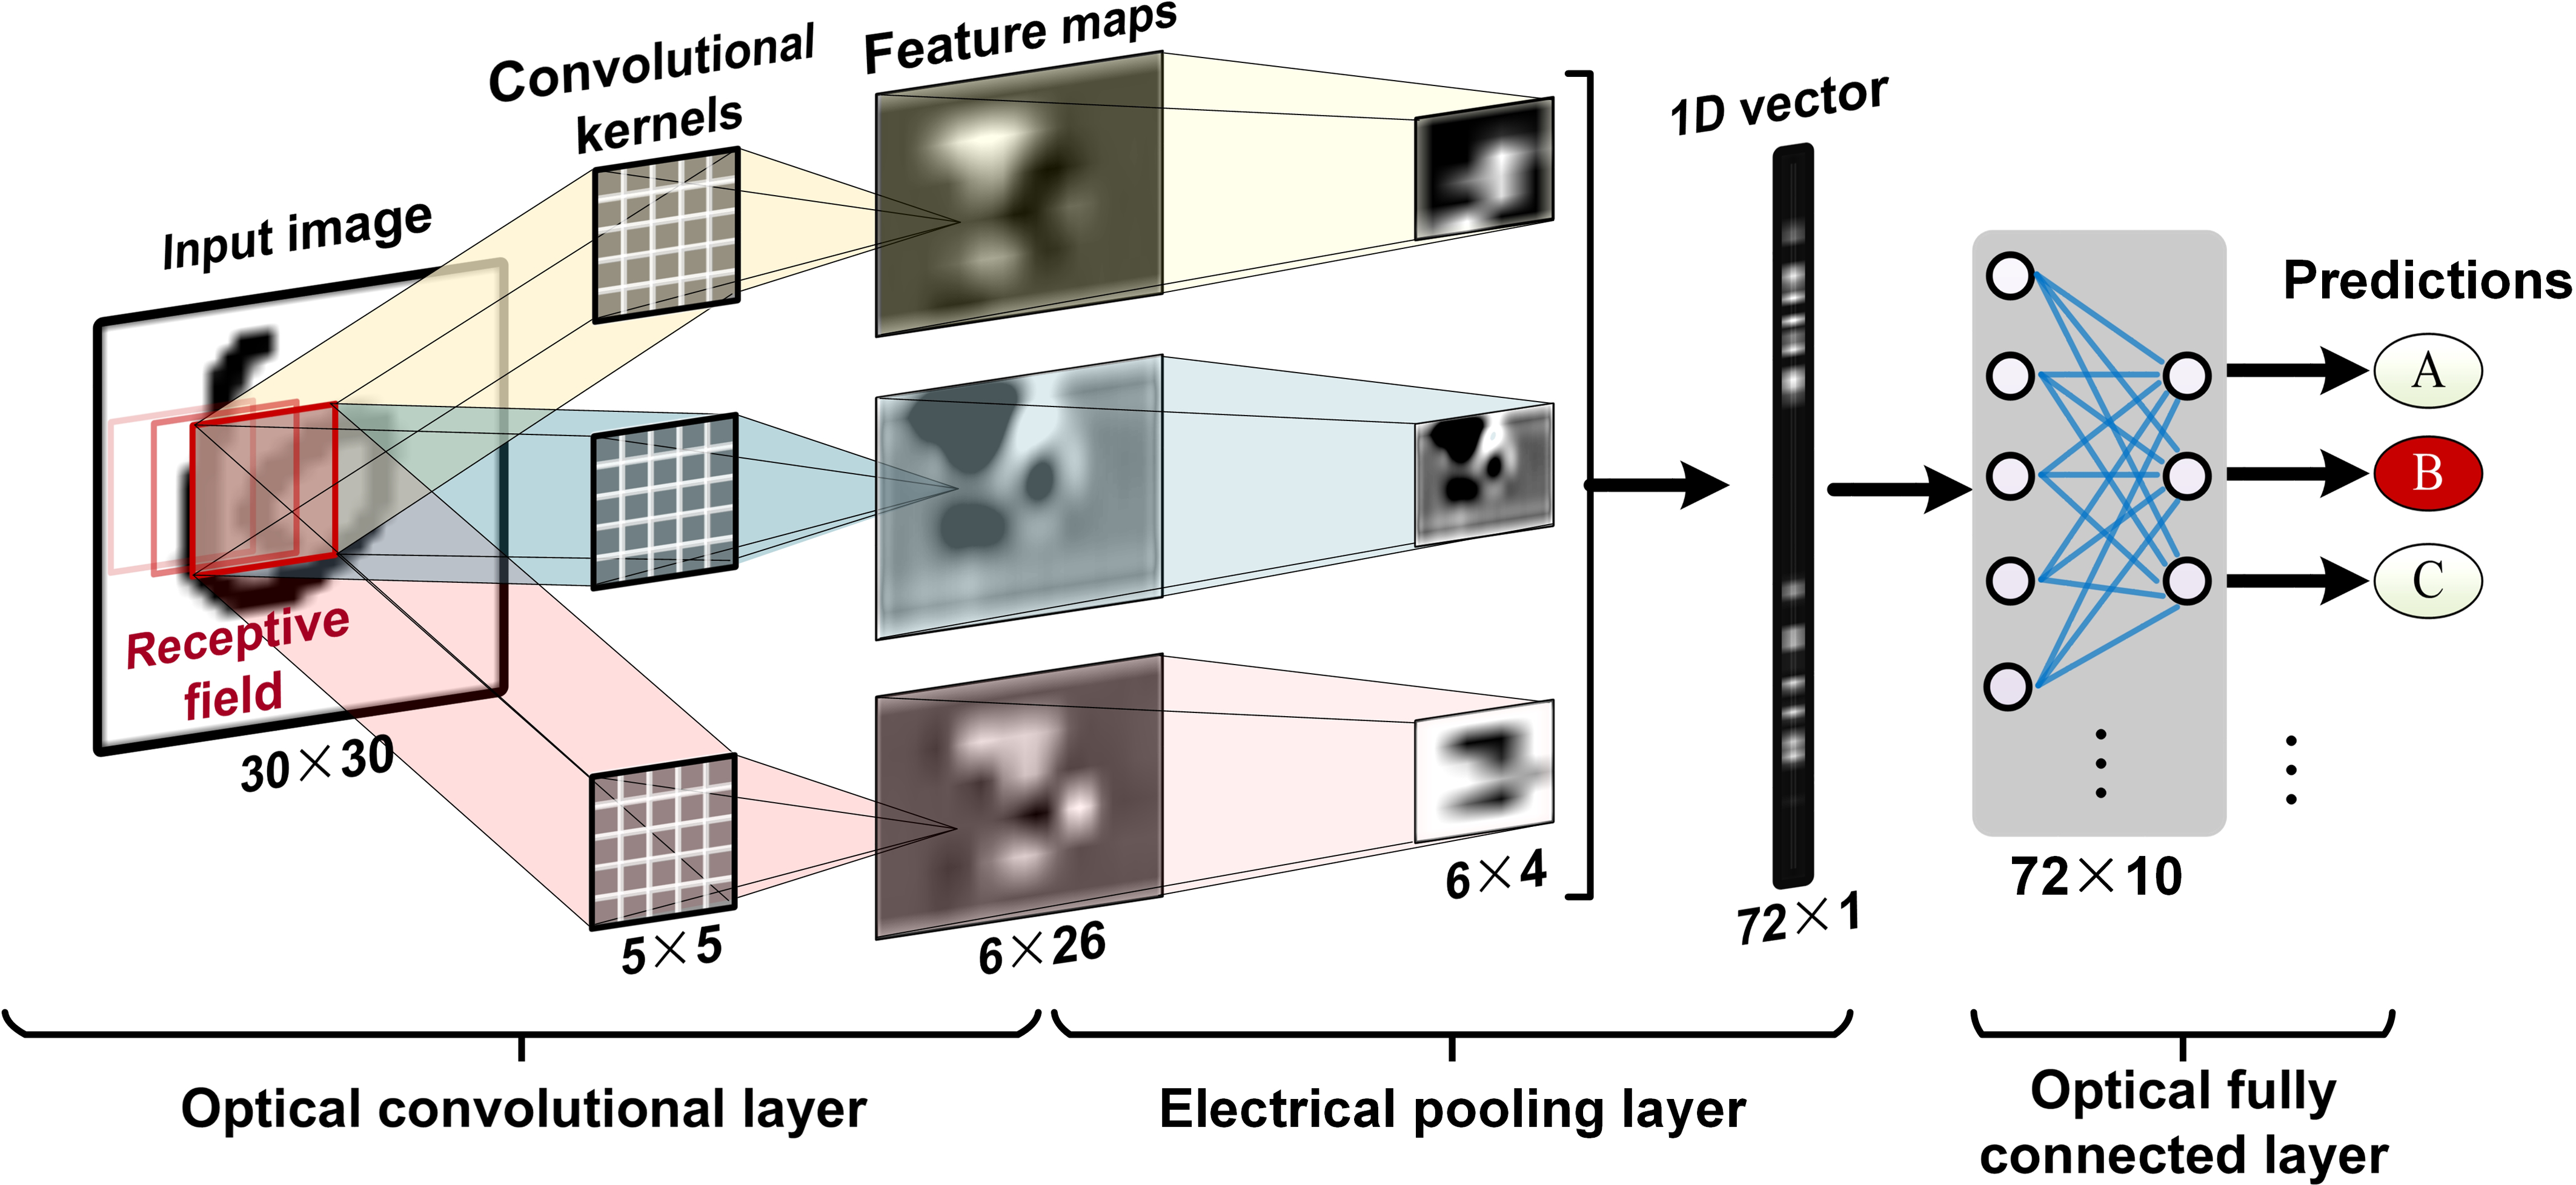 11 TOPS photonic convolutional accelerator for optical neural networks